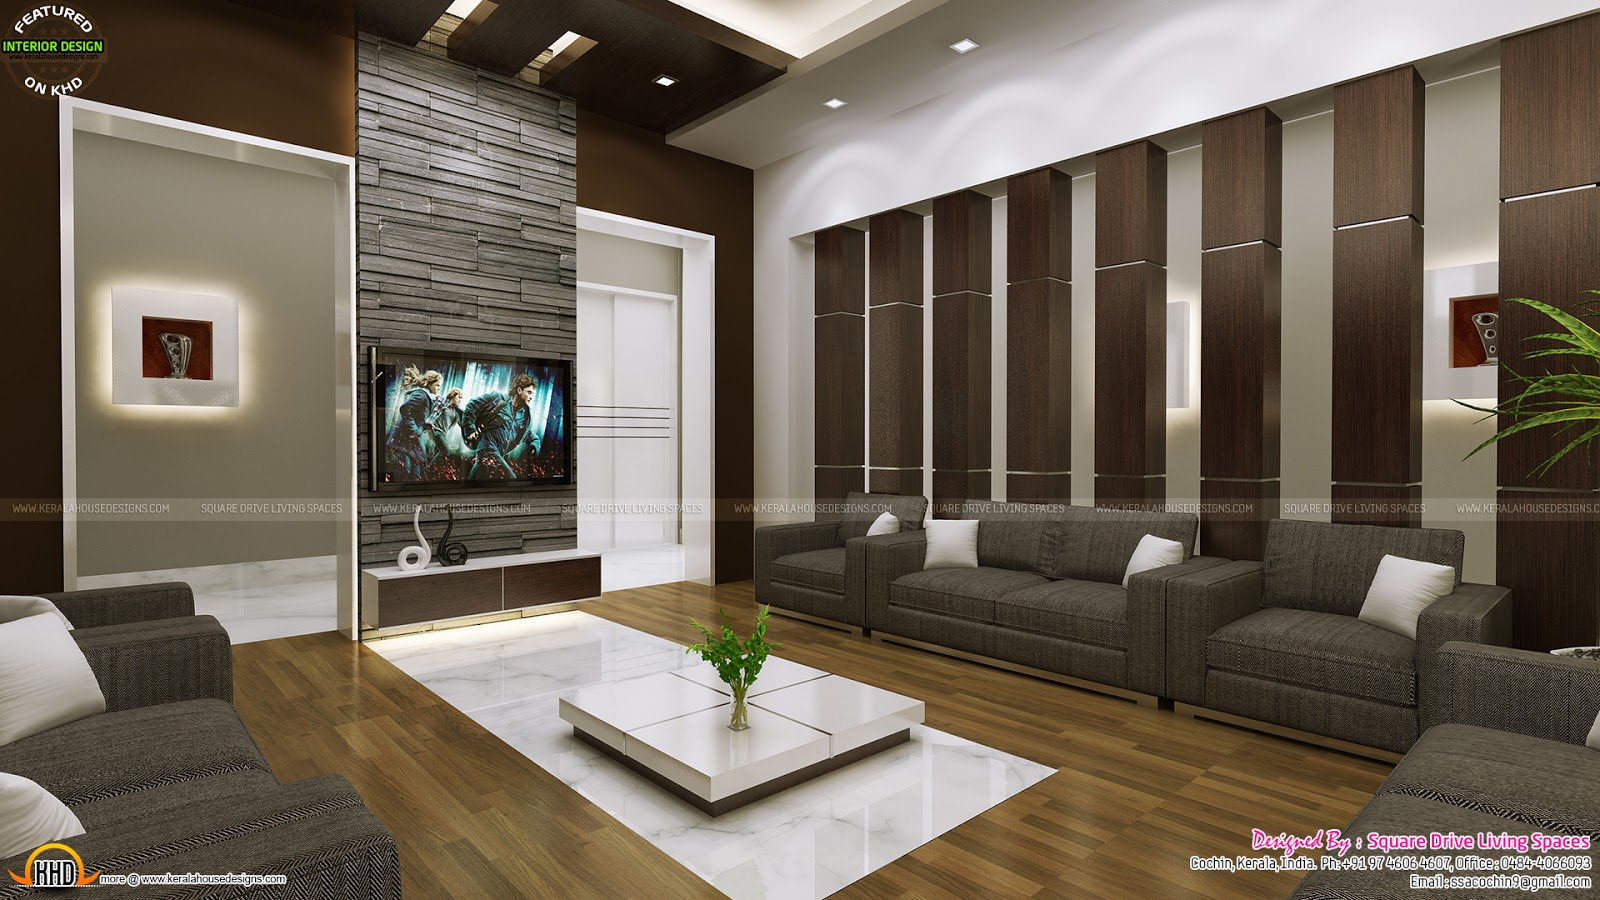 Attractive home interior ideas kerala home design and for Home interior living room